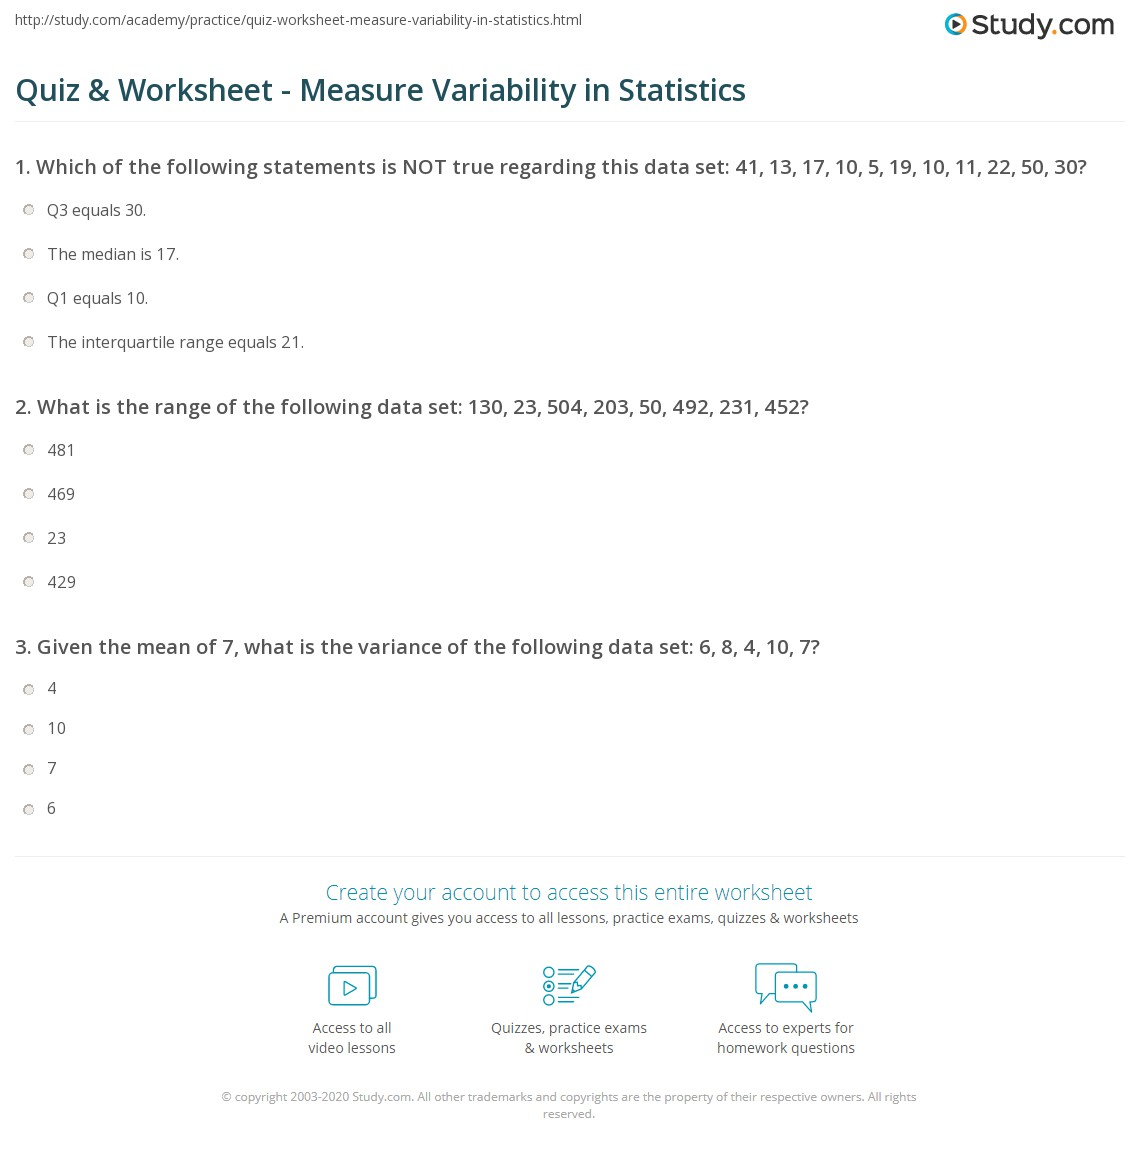 quiz worksheet measure variability in statistics com print variability in statistics definition measures worksheet